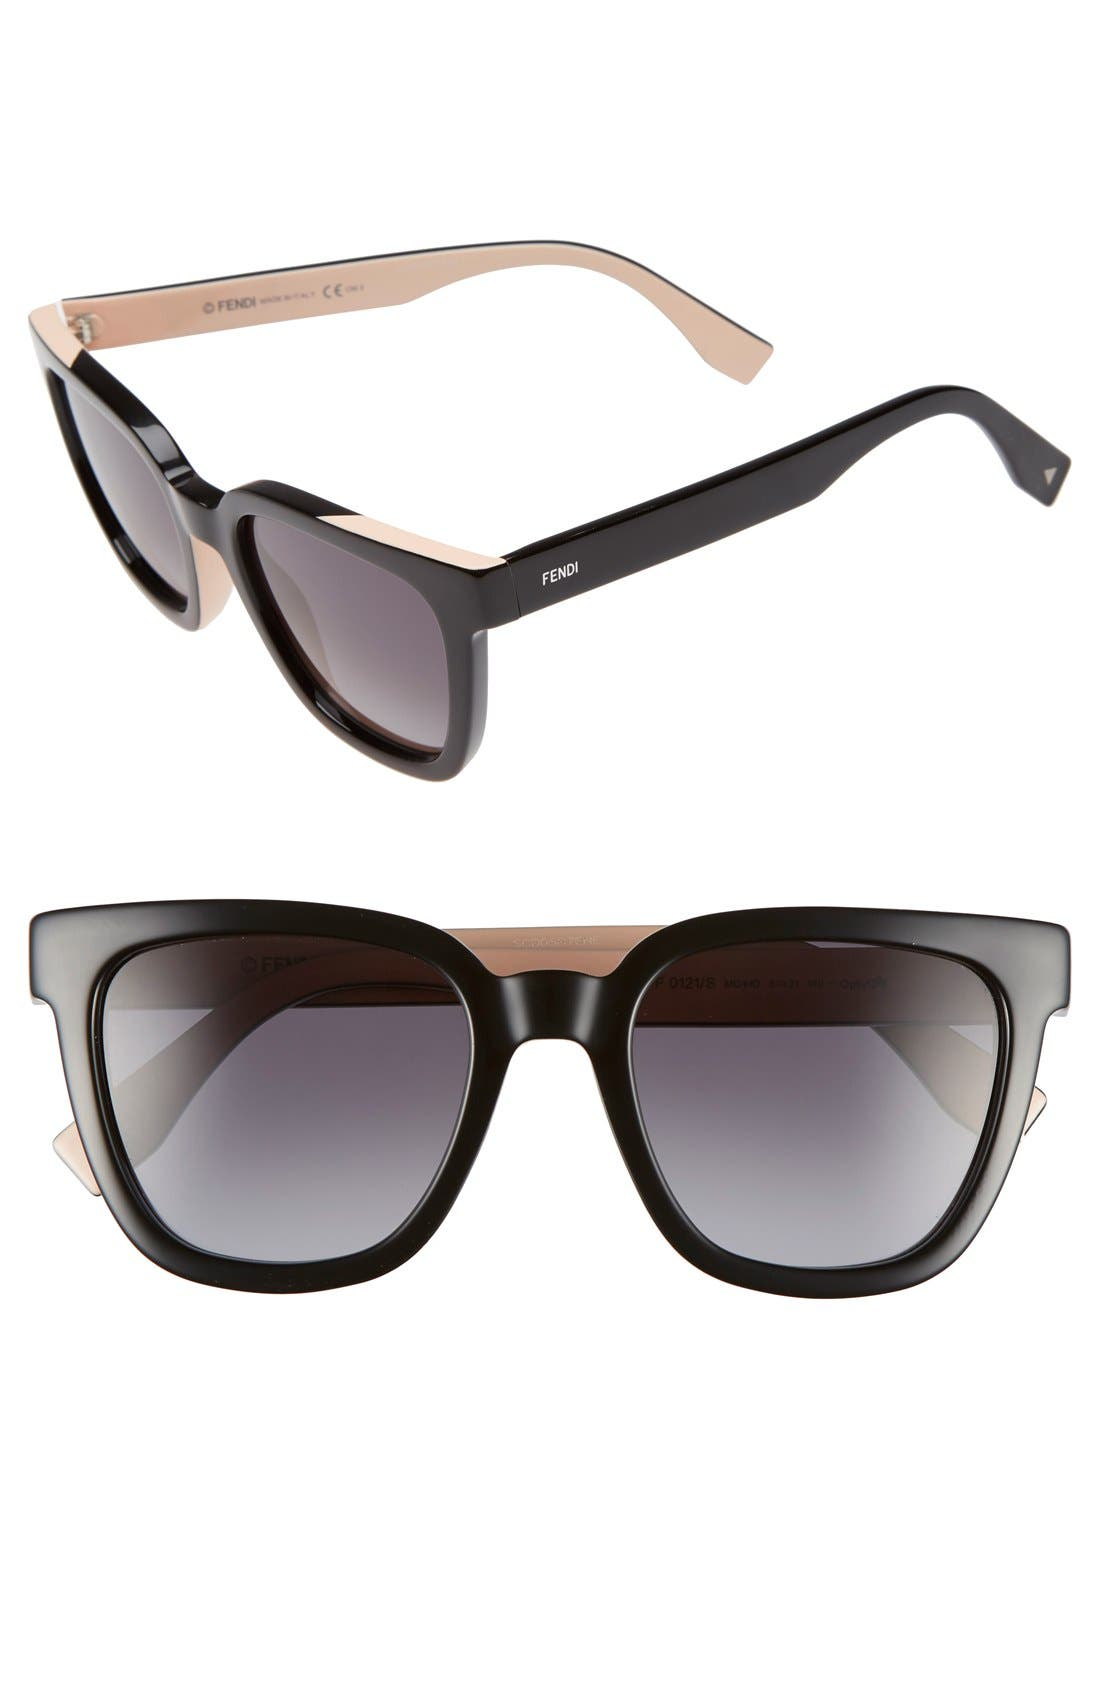 Fendi 51mm Sunglasses